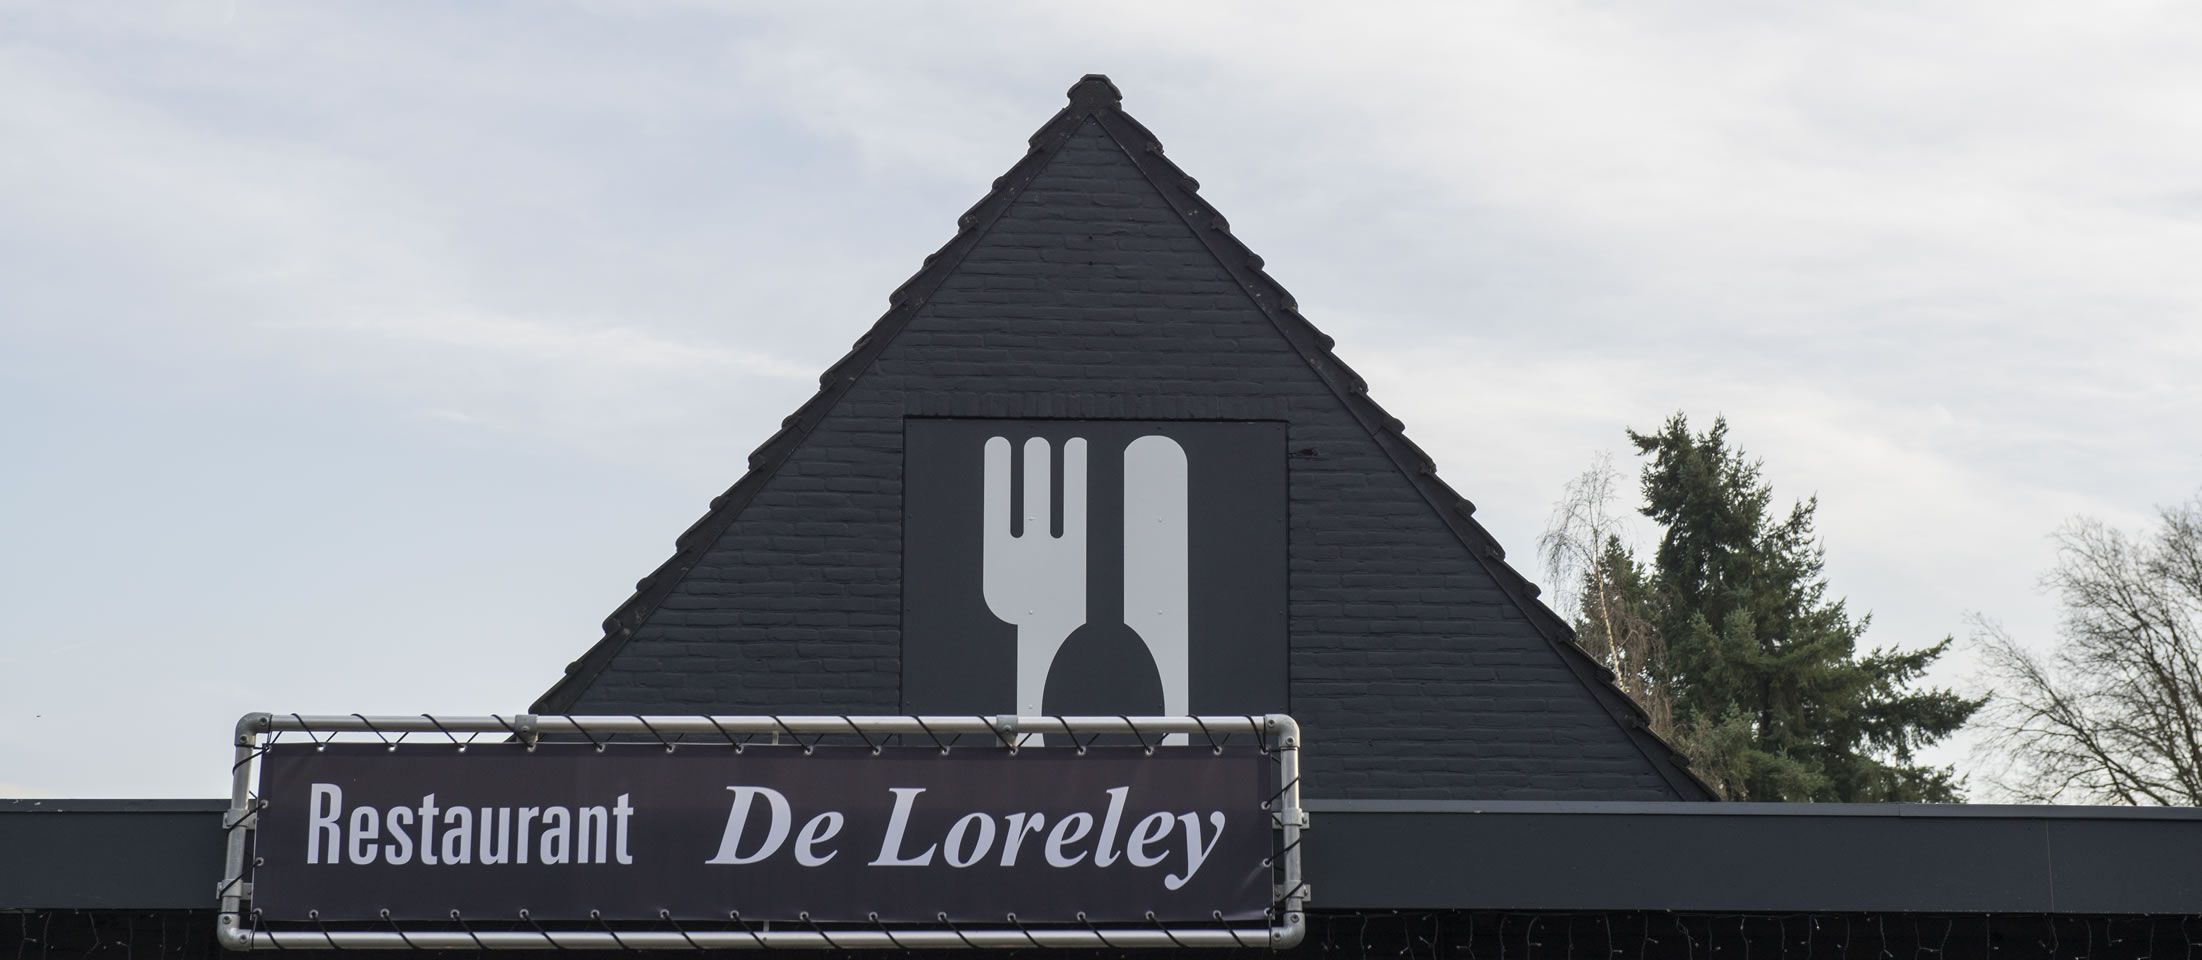 Restaurant de Loreley